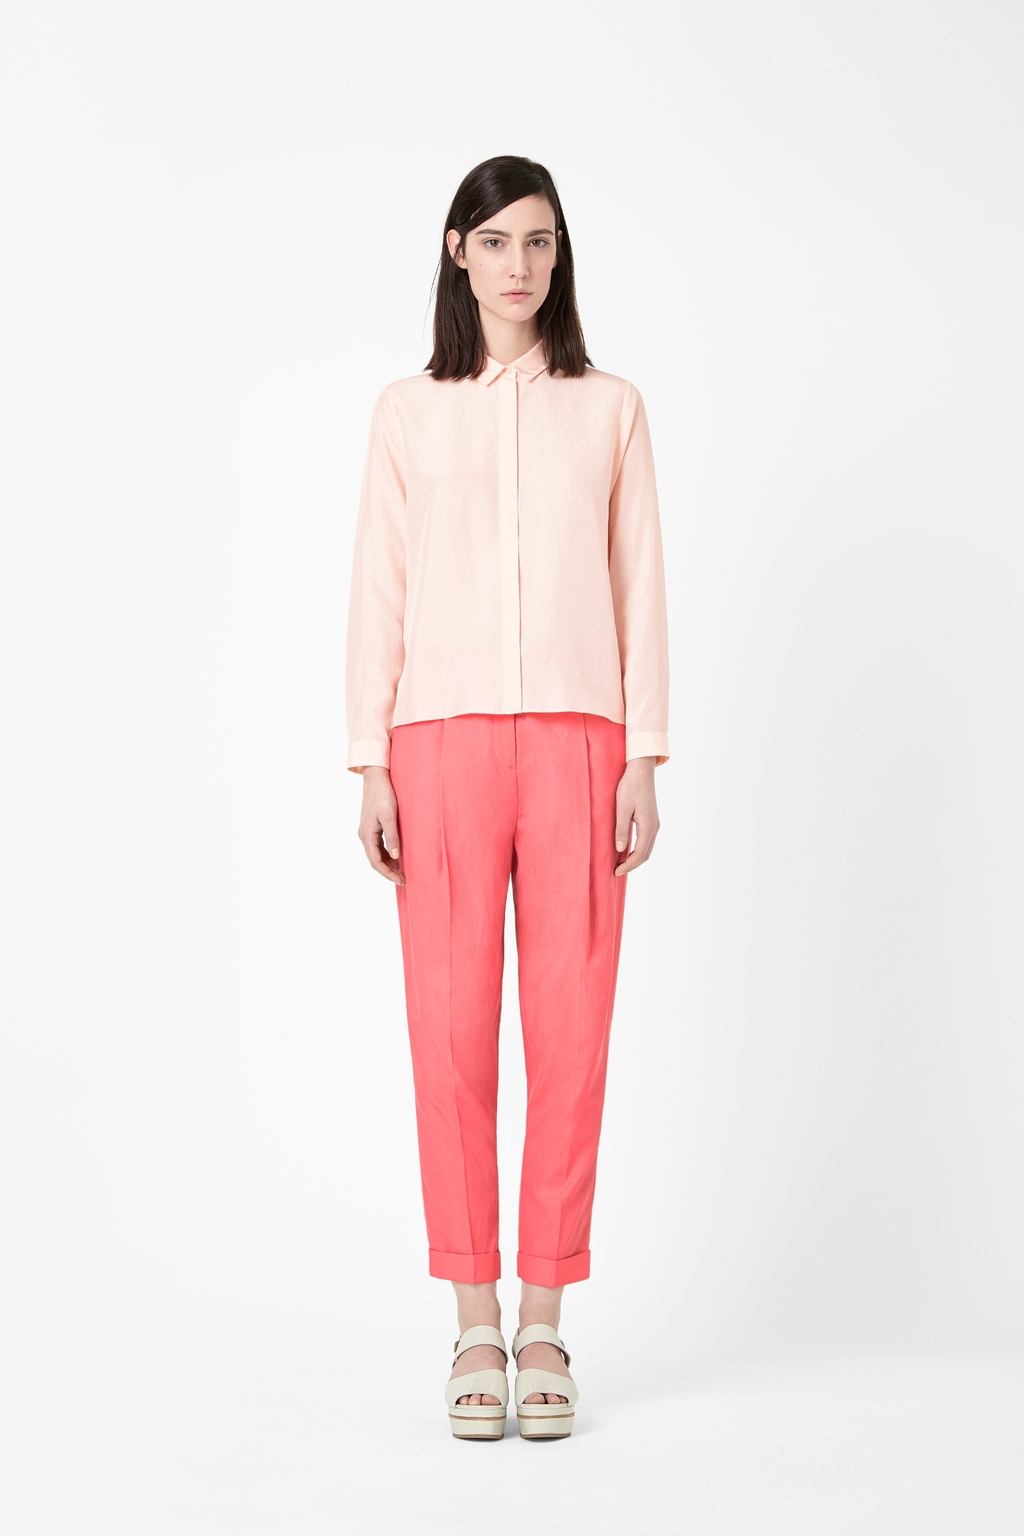 Relaxed Pleated Trousers - pattern: plain; pocket detail: small back pockets, pockets at the sides; style: peg leg; waist: high rise; predominant colour: pink; occasions: casual, evening, work, occasion, creative work; length: ankle length; fibres: cotton - mix; fit: tapered; texture group: woven light midweight; trends: hot brights, sorbet shades; season: s/s 2014